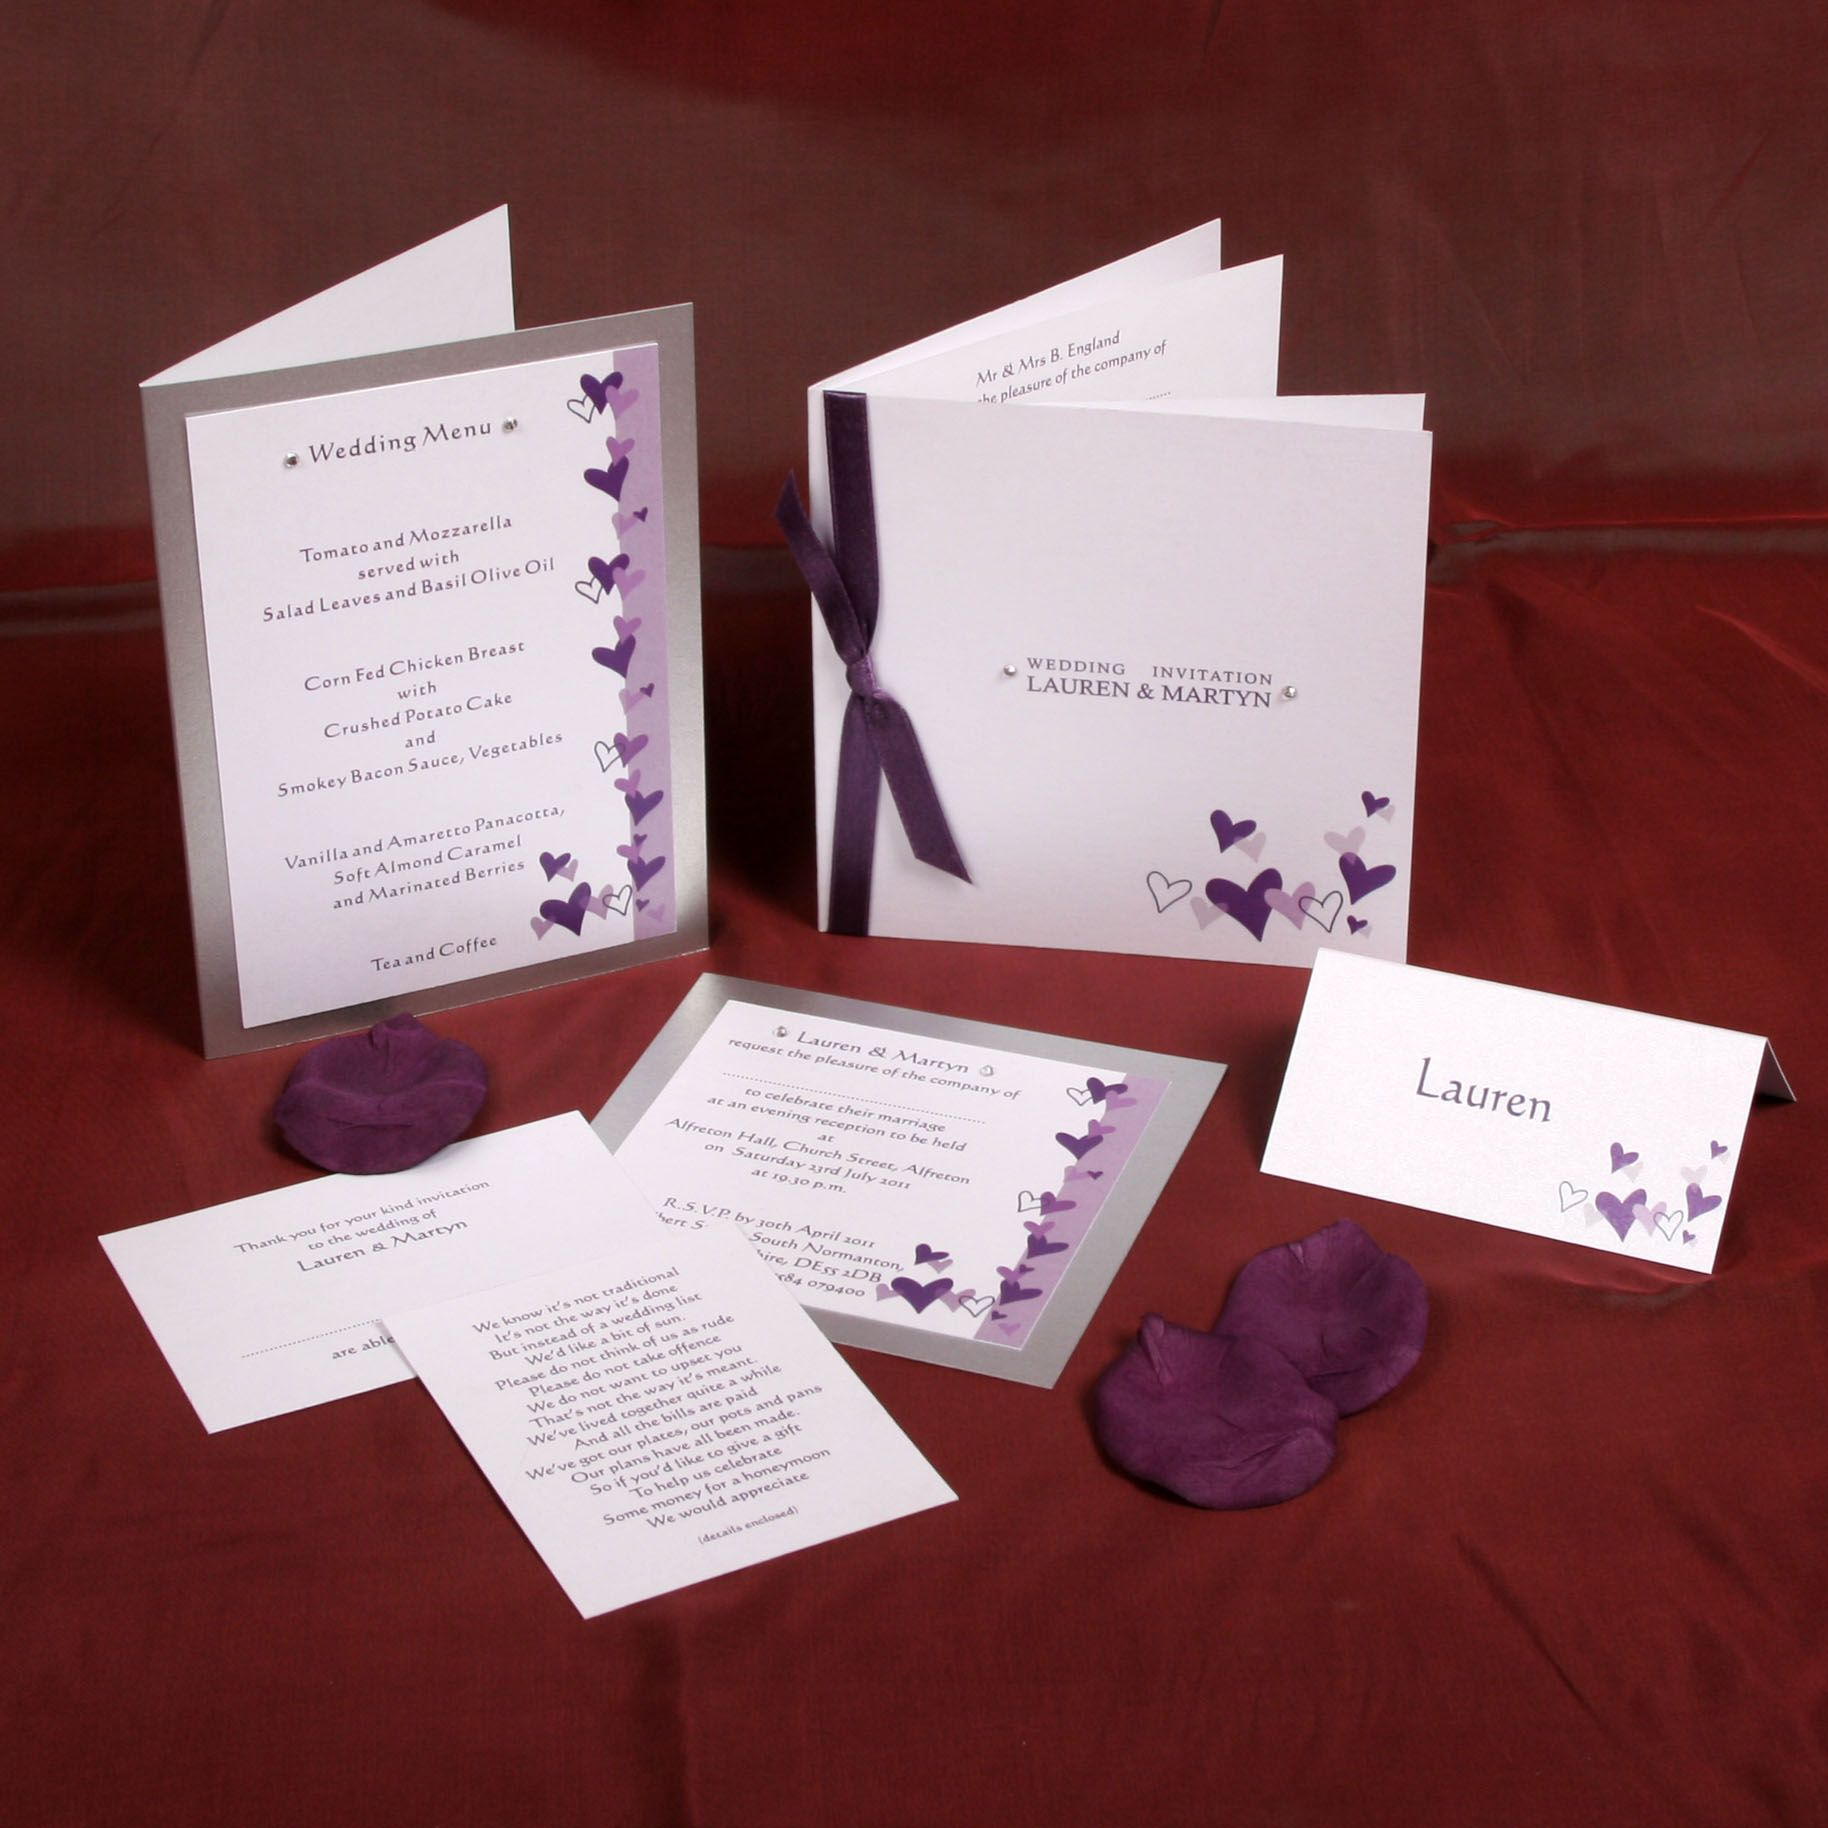 red wedding invitations uk - Google Search | WEDDING | Pinterest ...